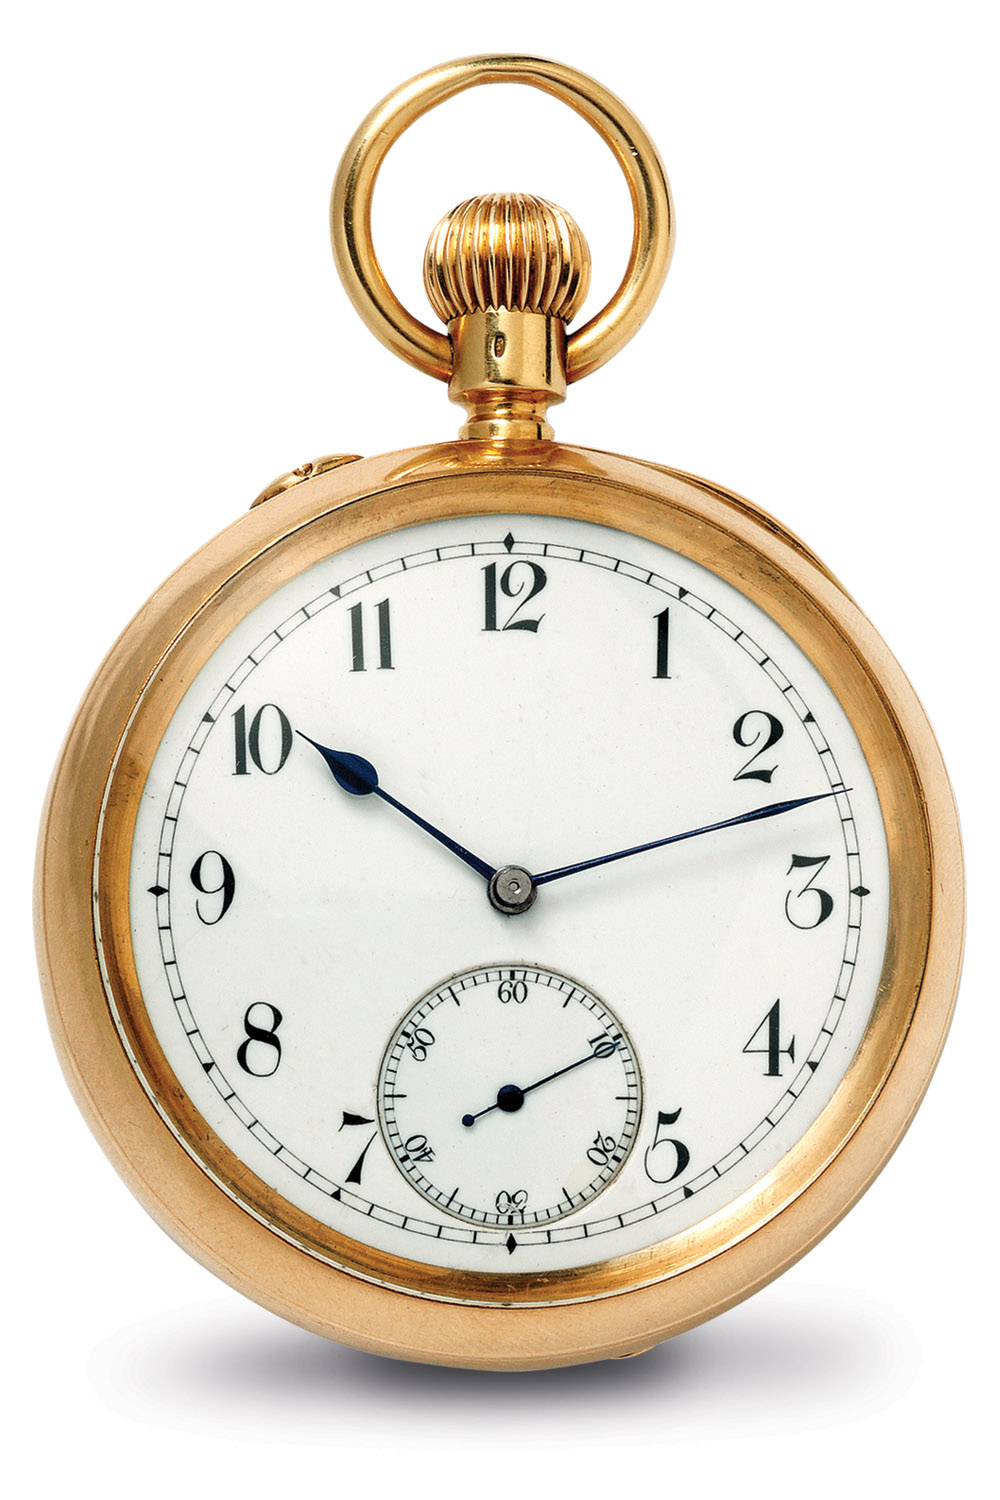 Baume & Mercier Hand Wound Pocket Watch Tourbillon (1892)